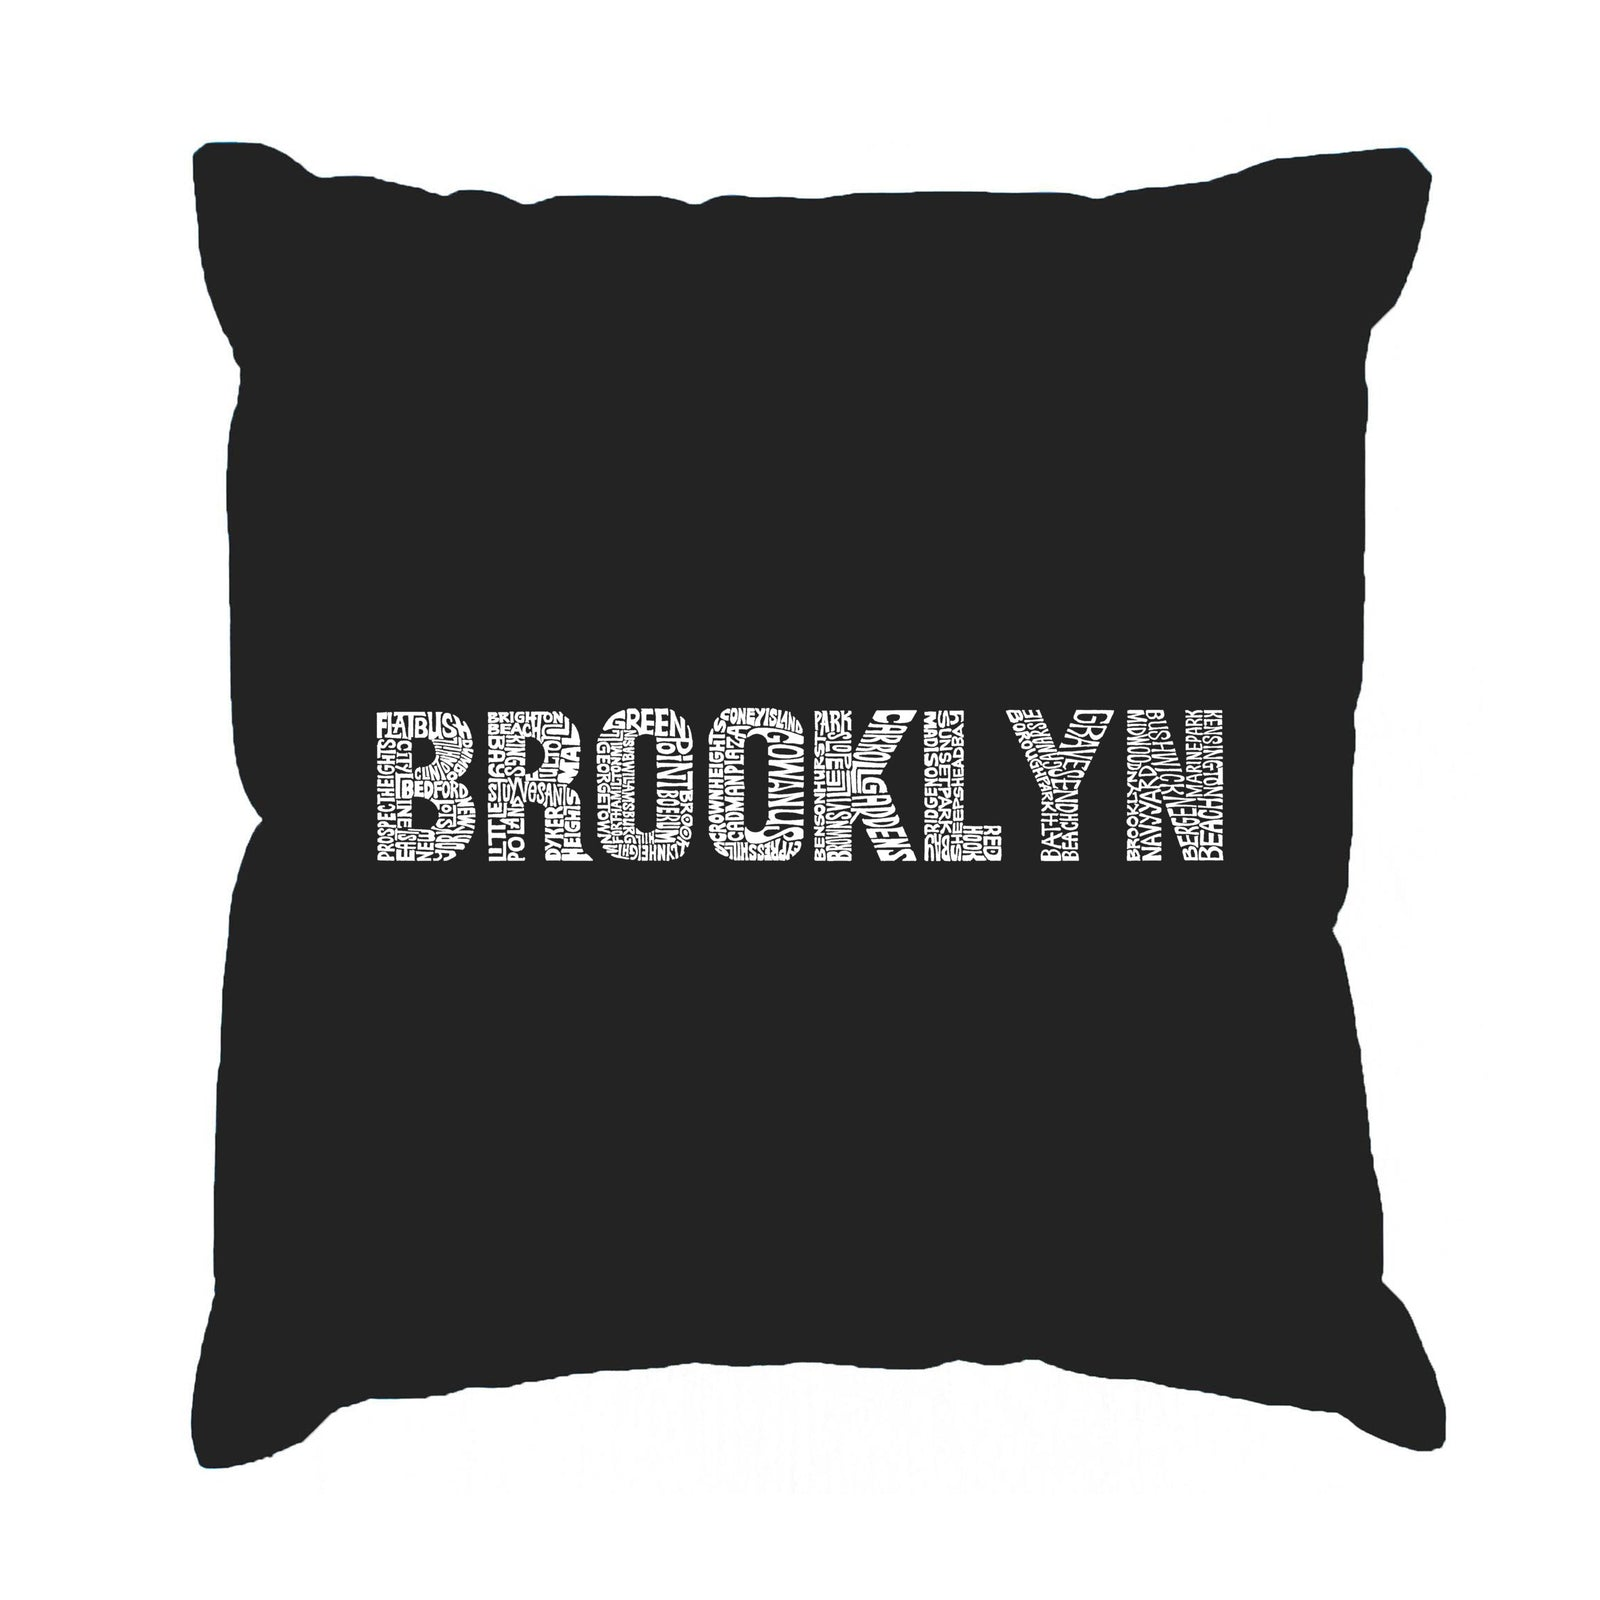 Throw Pillow Cover - BROOKLYN NEIGHBORHOODS